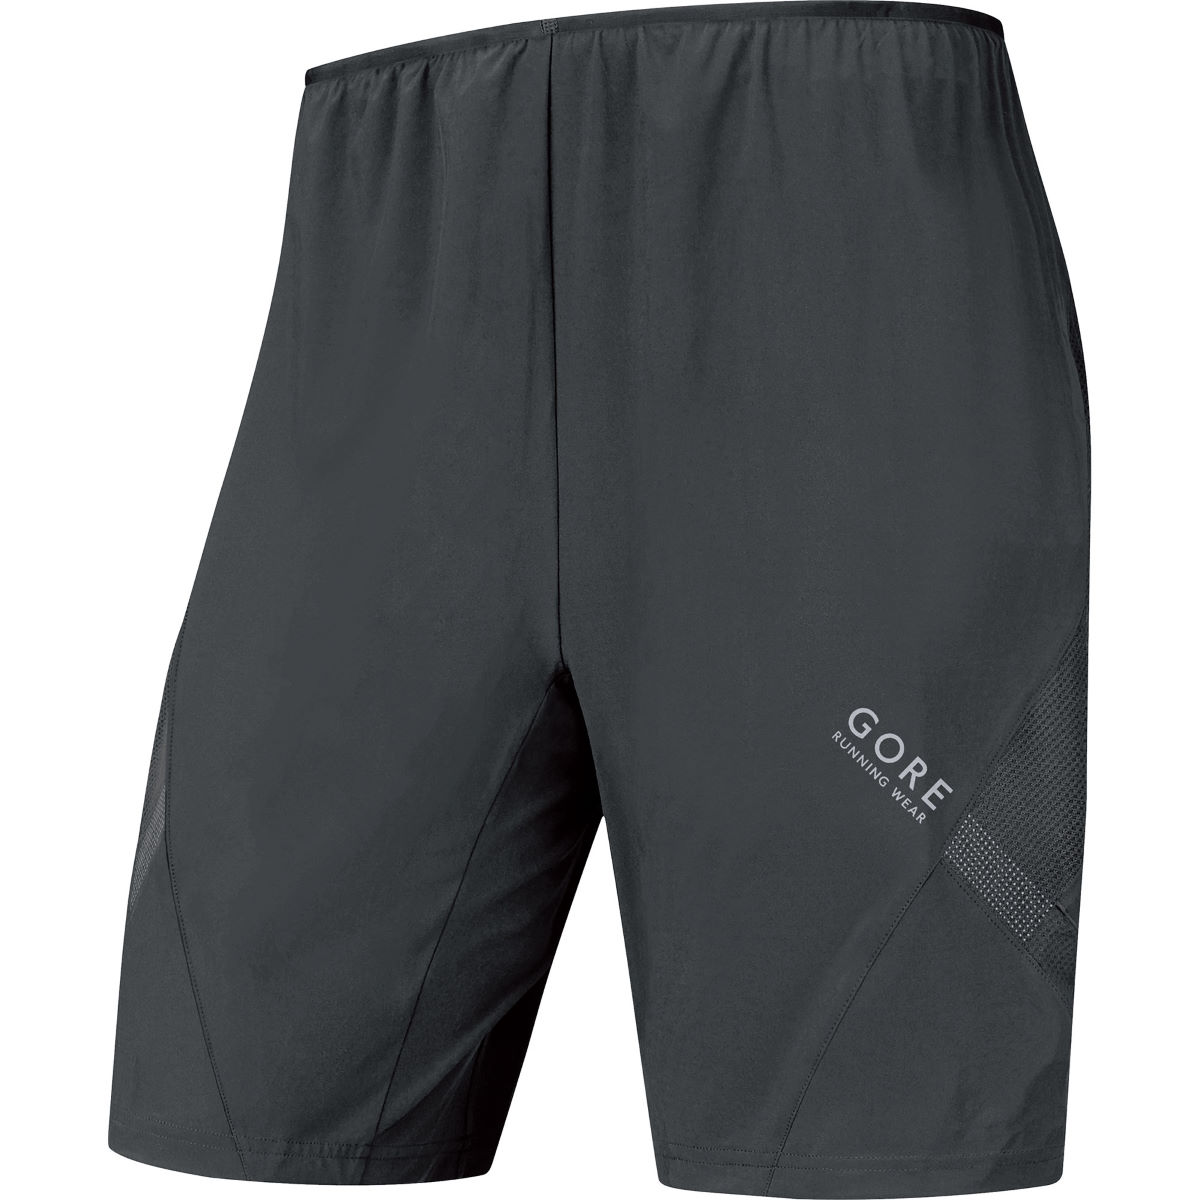 Short Gore Running Wear Air (2 en 1) - L black Shorts de running